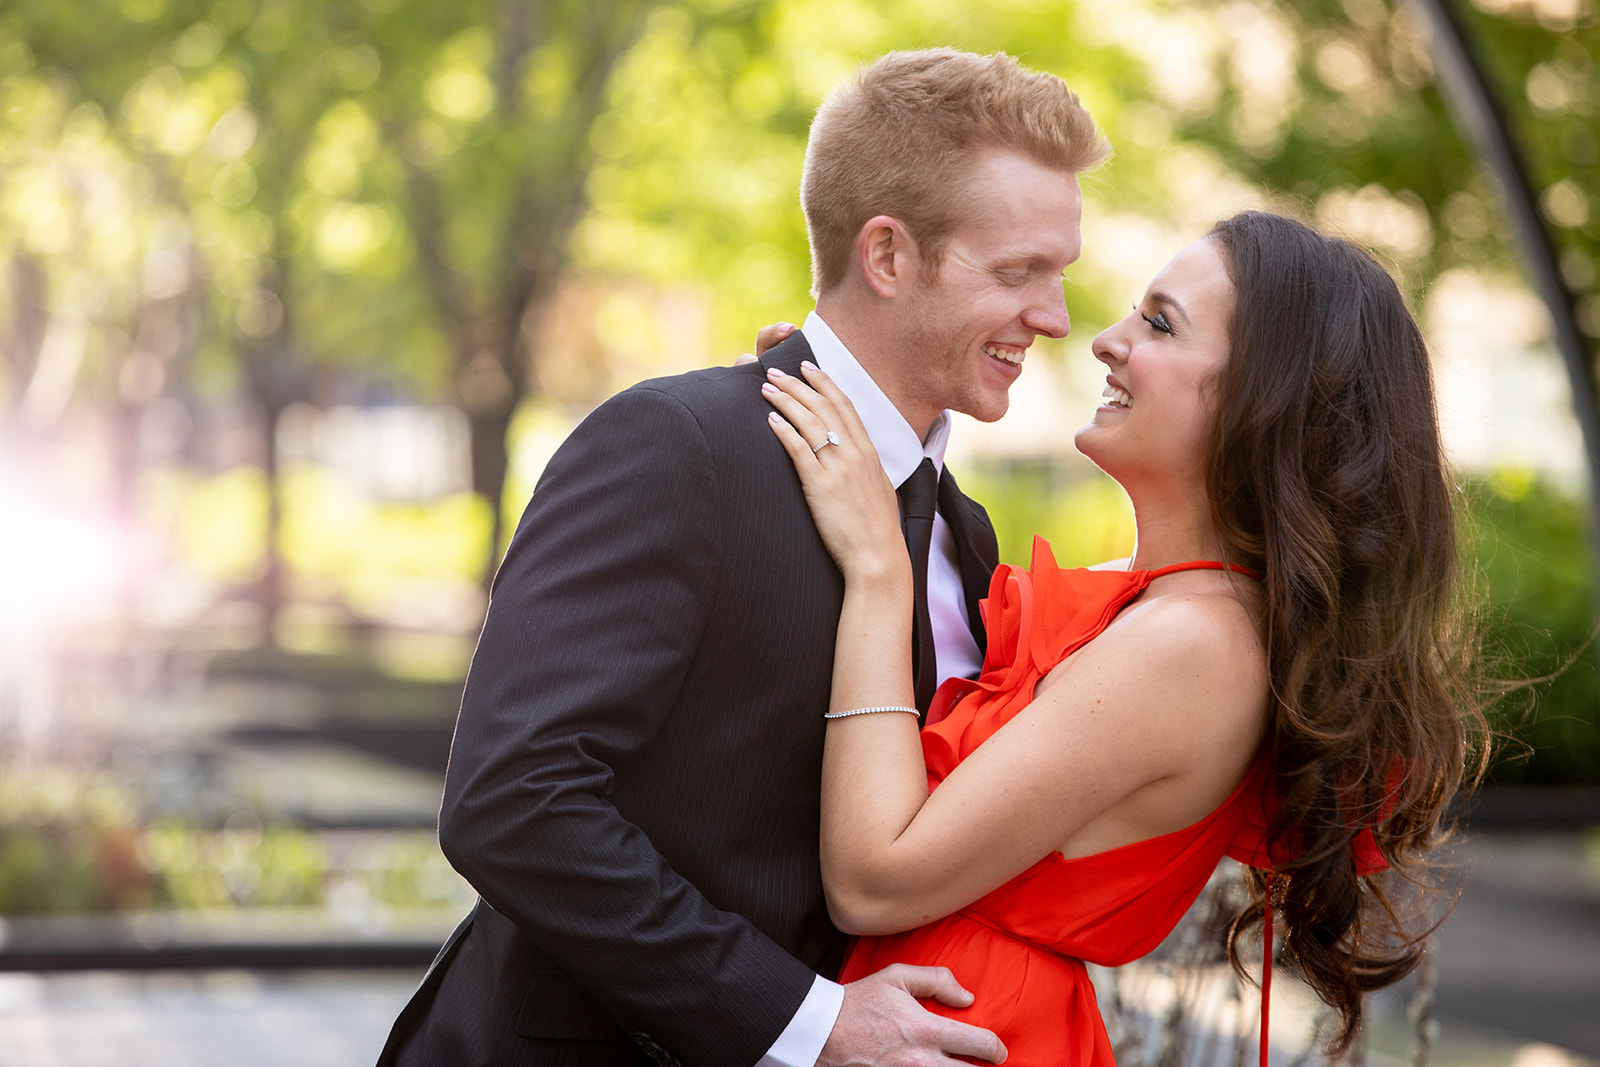 couple posing for their engagement photos, woman in red dress, man in pinstriped suit